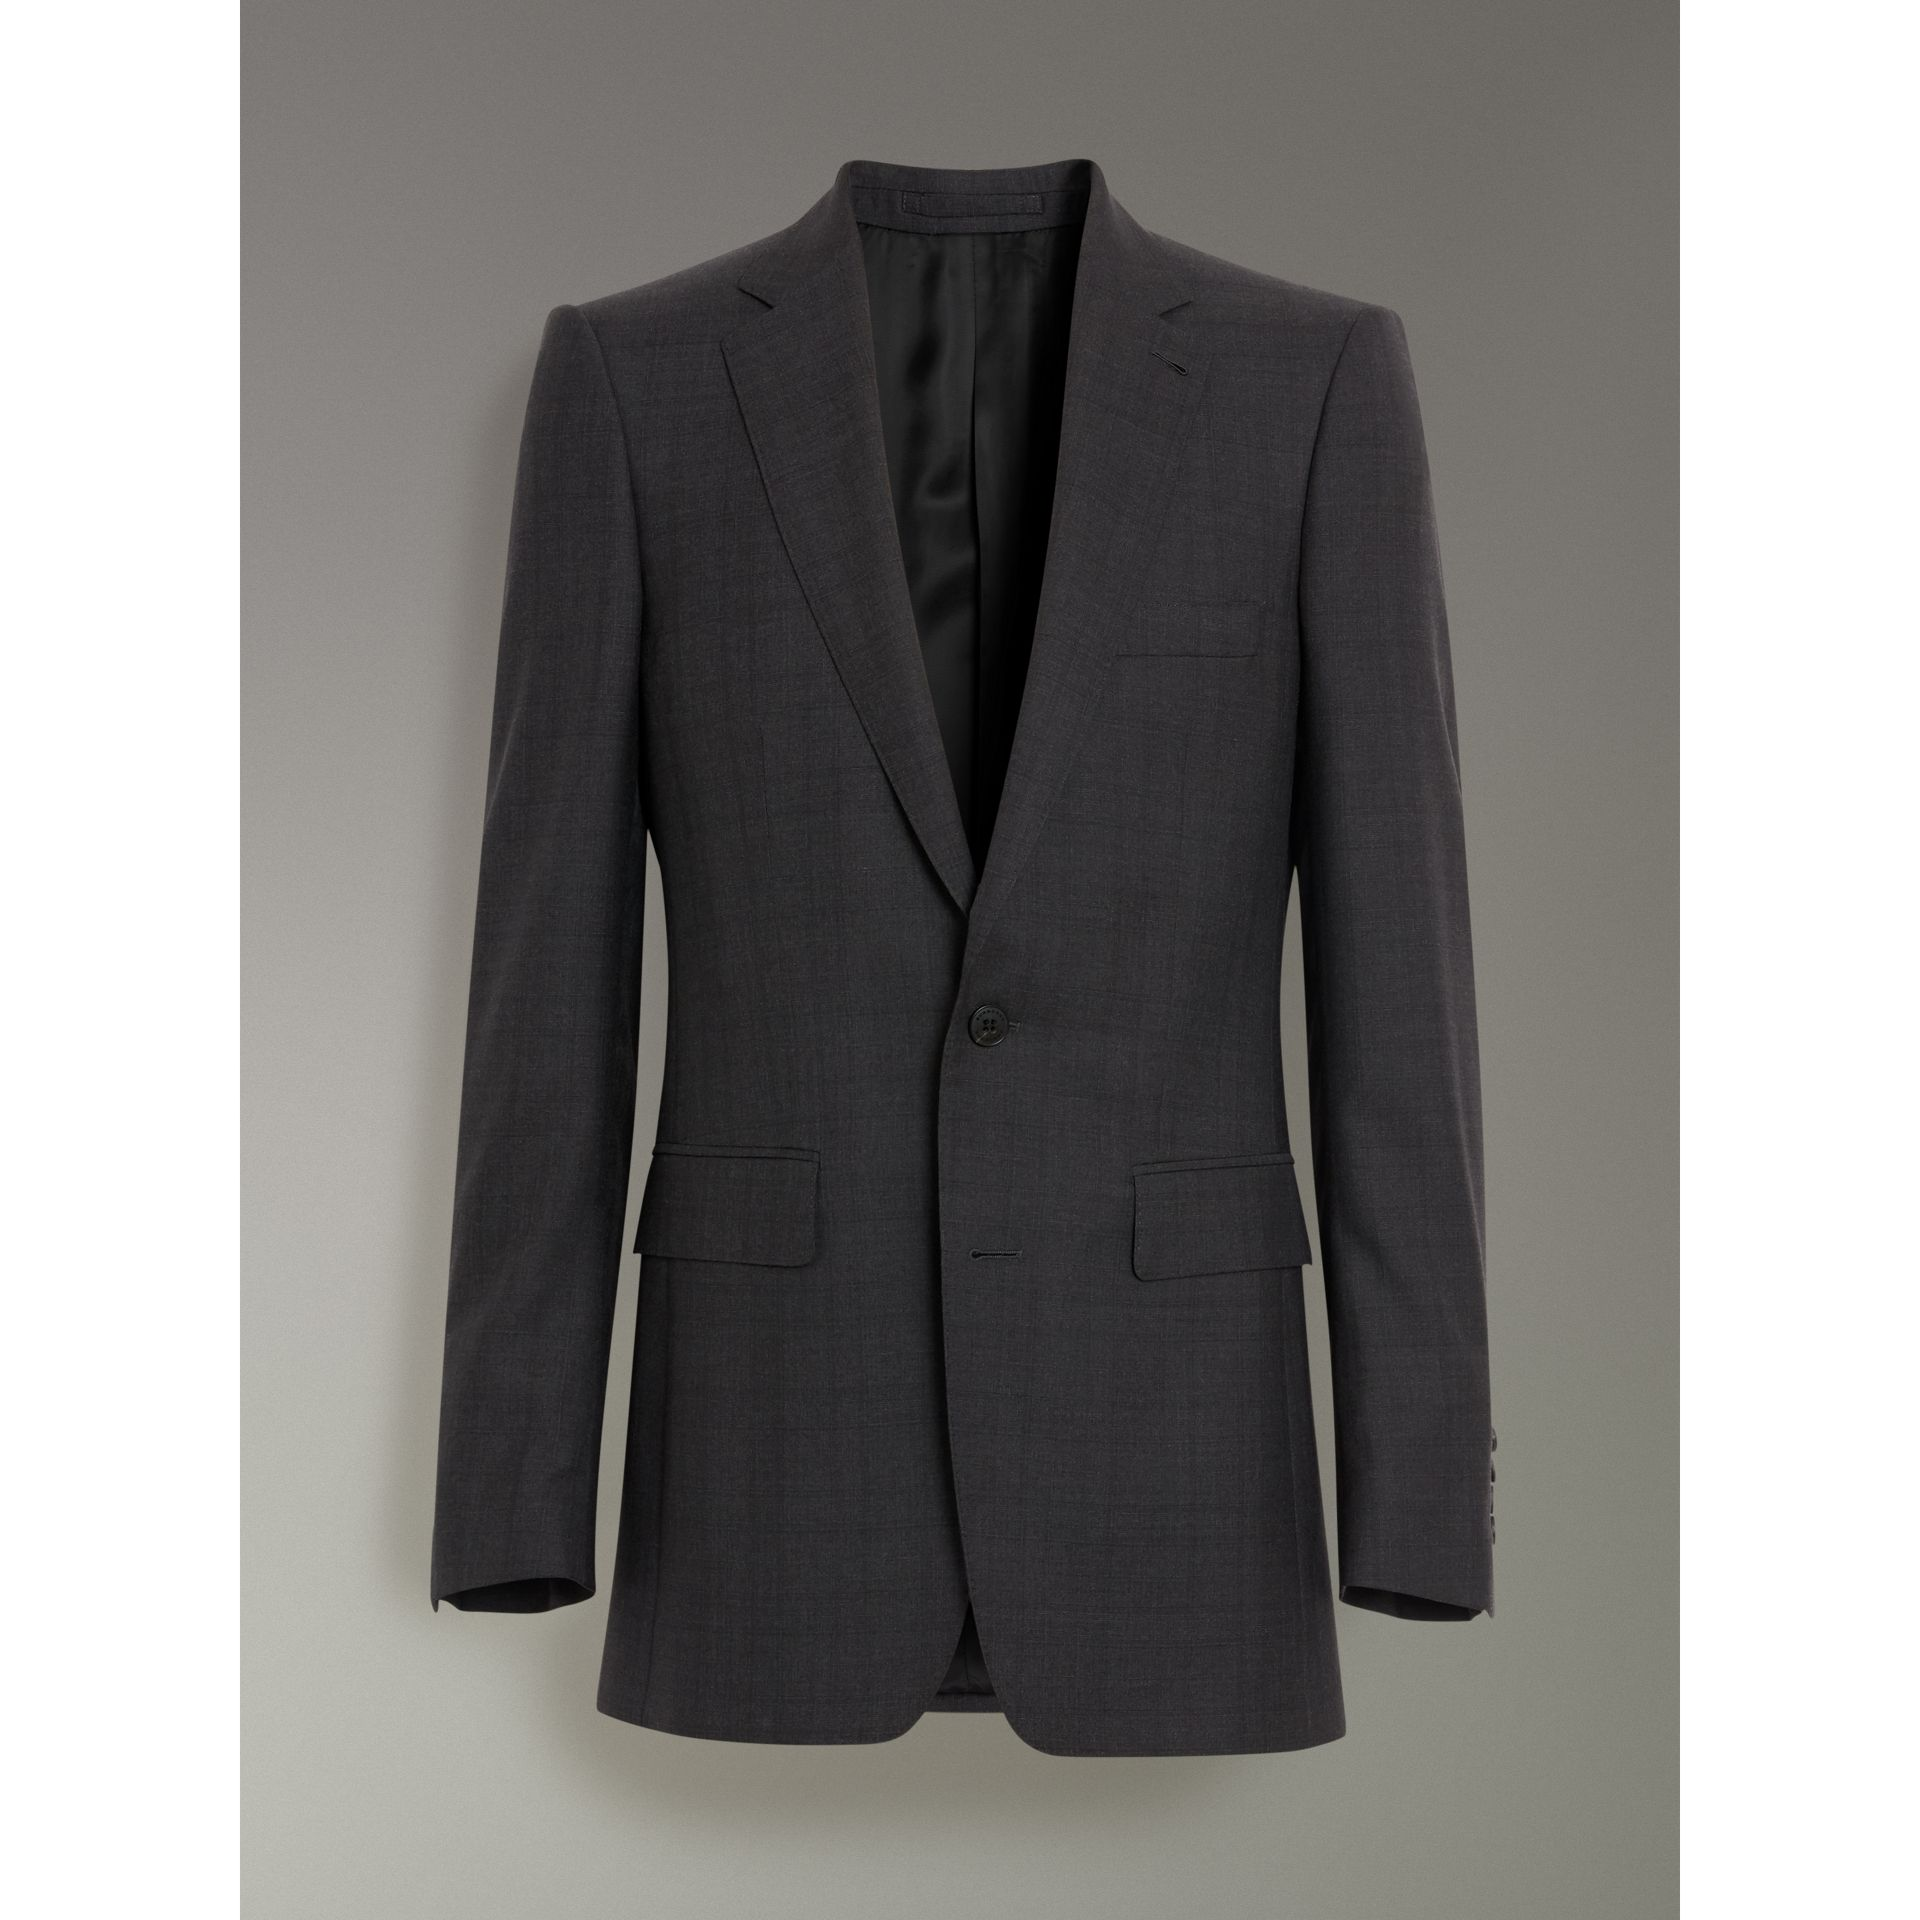 Burberry Charcoal Melange Slim Fit Prince of Wales Check Wool Silk Suit